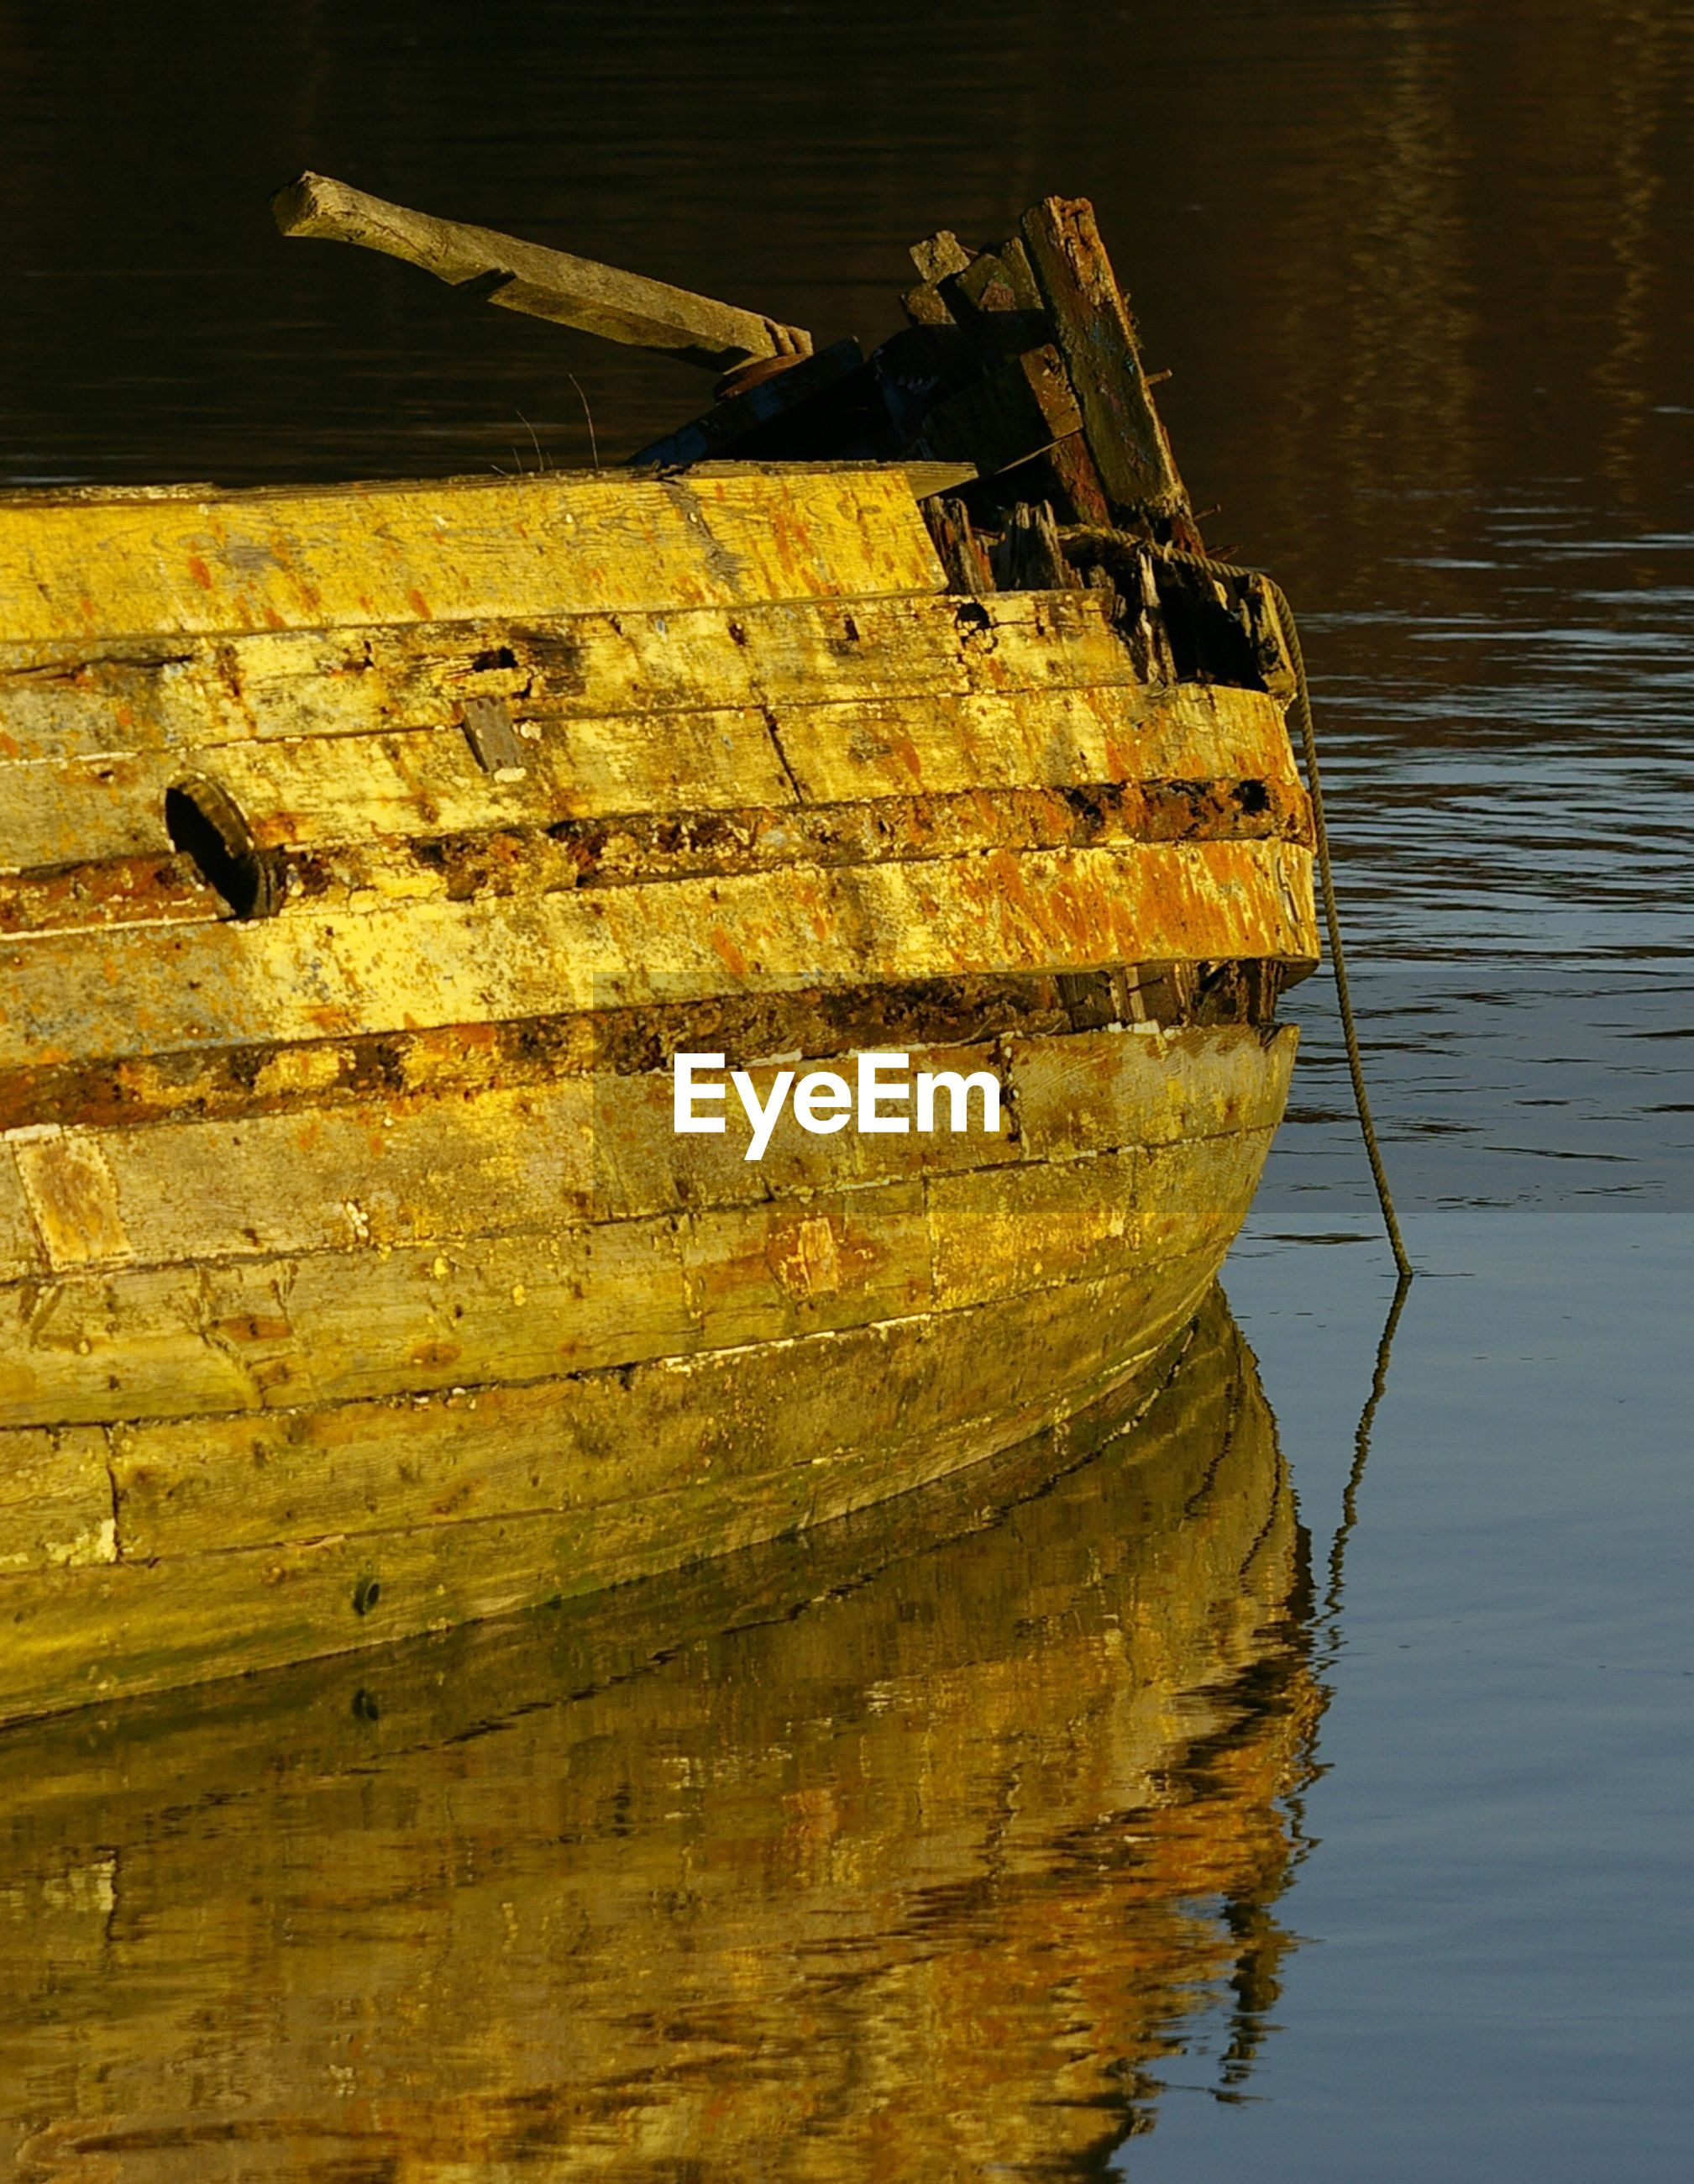 water, yellow, reflection, lake, nautical vessel, calm, cropped, boat, rippled, close-up, plank, in a row, waterfront, ocean, tranquility, no people, stone, weathered, day, sea, surface level, tranquil scene, lakeside